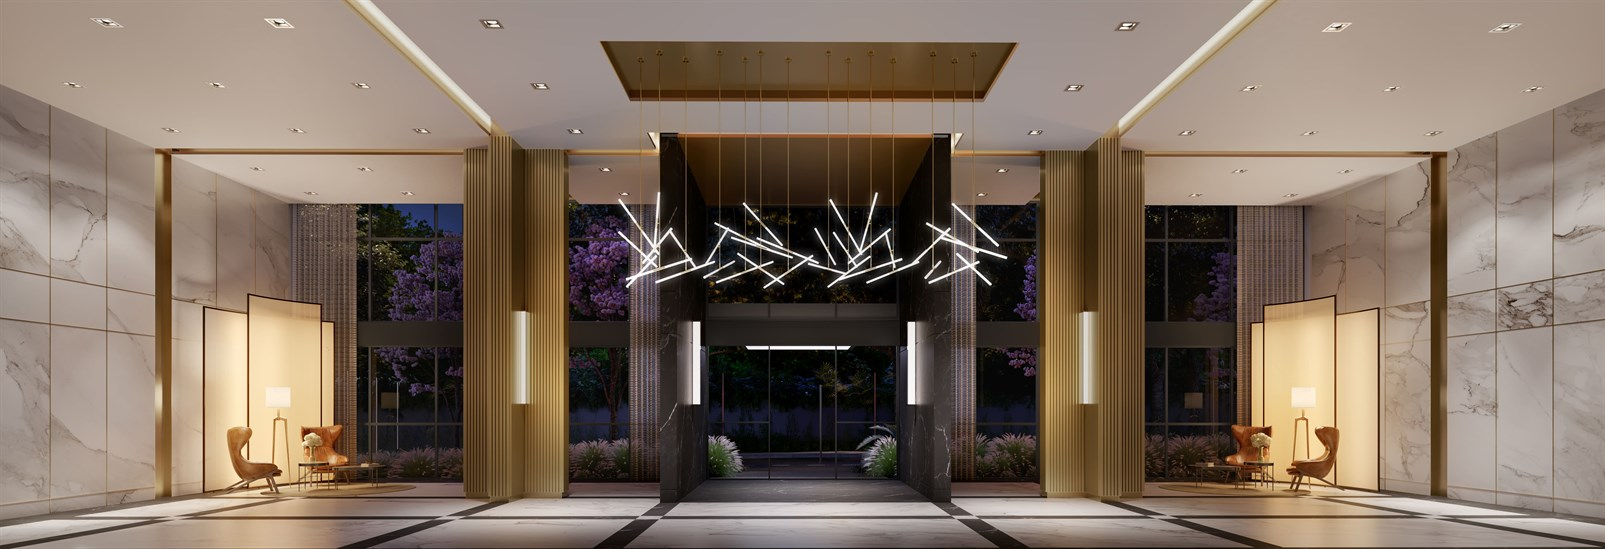 The Residences | Lobby Noturno